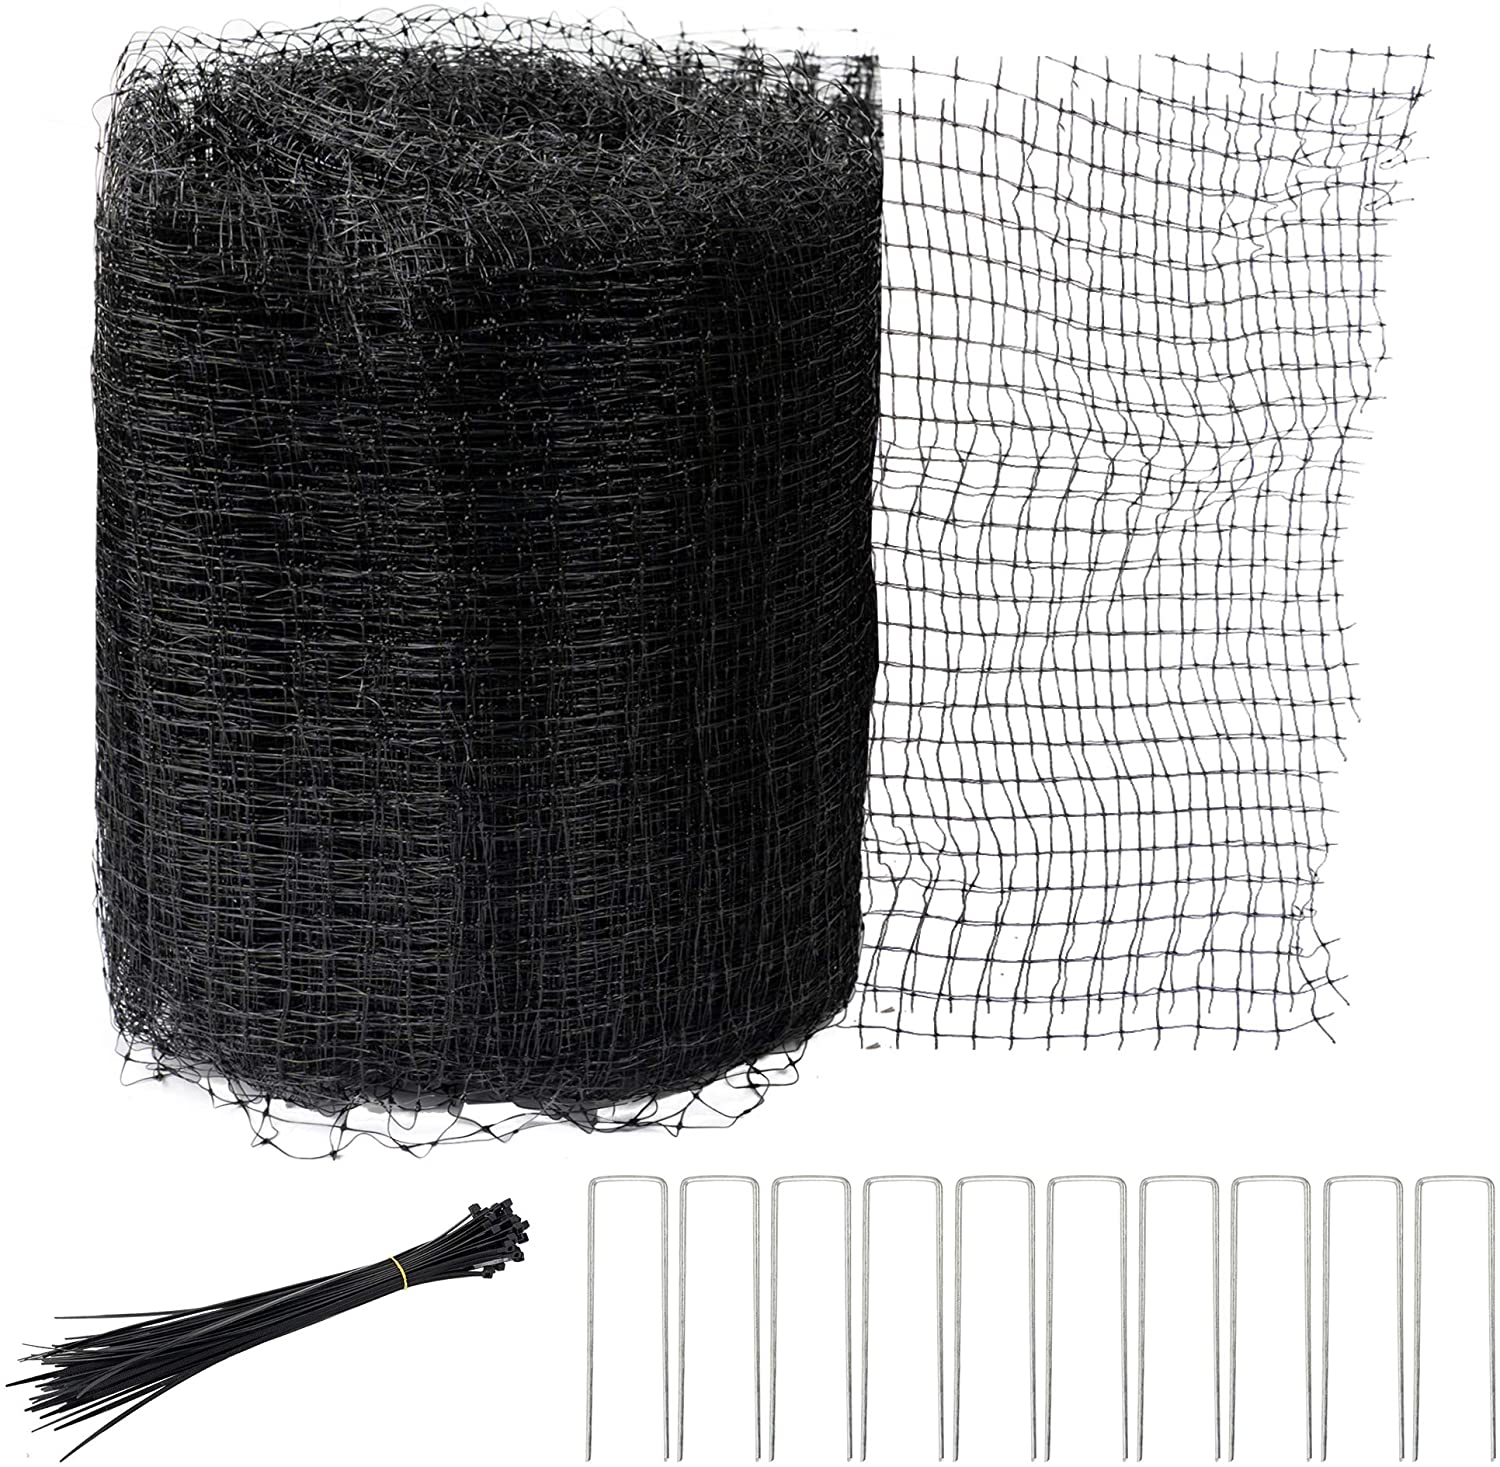 Hourleey Bird Netting, 7 x 50 FT Black Deer Fence Netting Reusable Protective Garden Netting for Vegetables Plants Fruit Trees with 50 Pcs Cable Ties